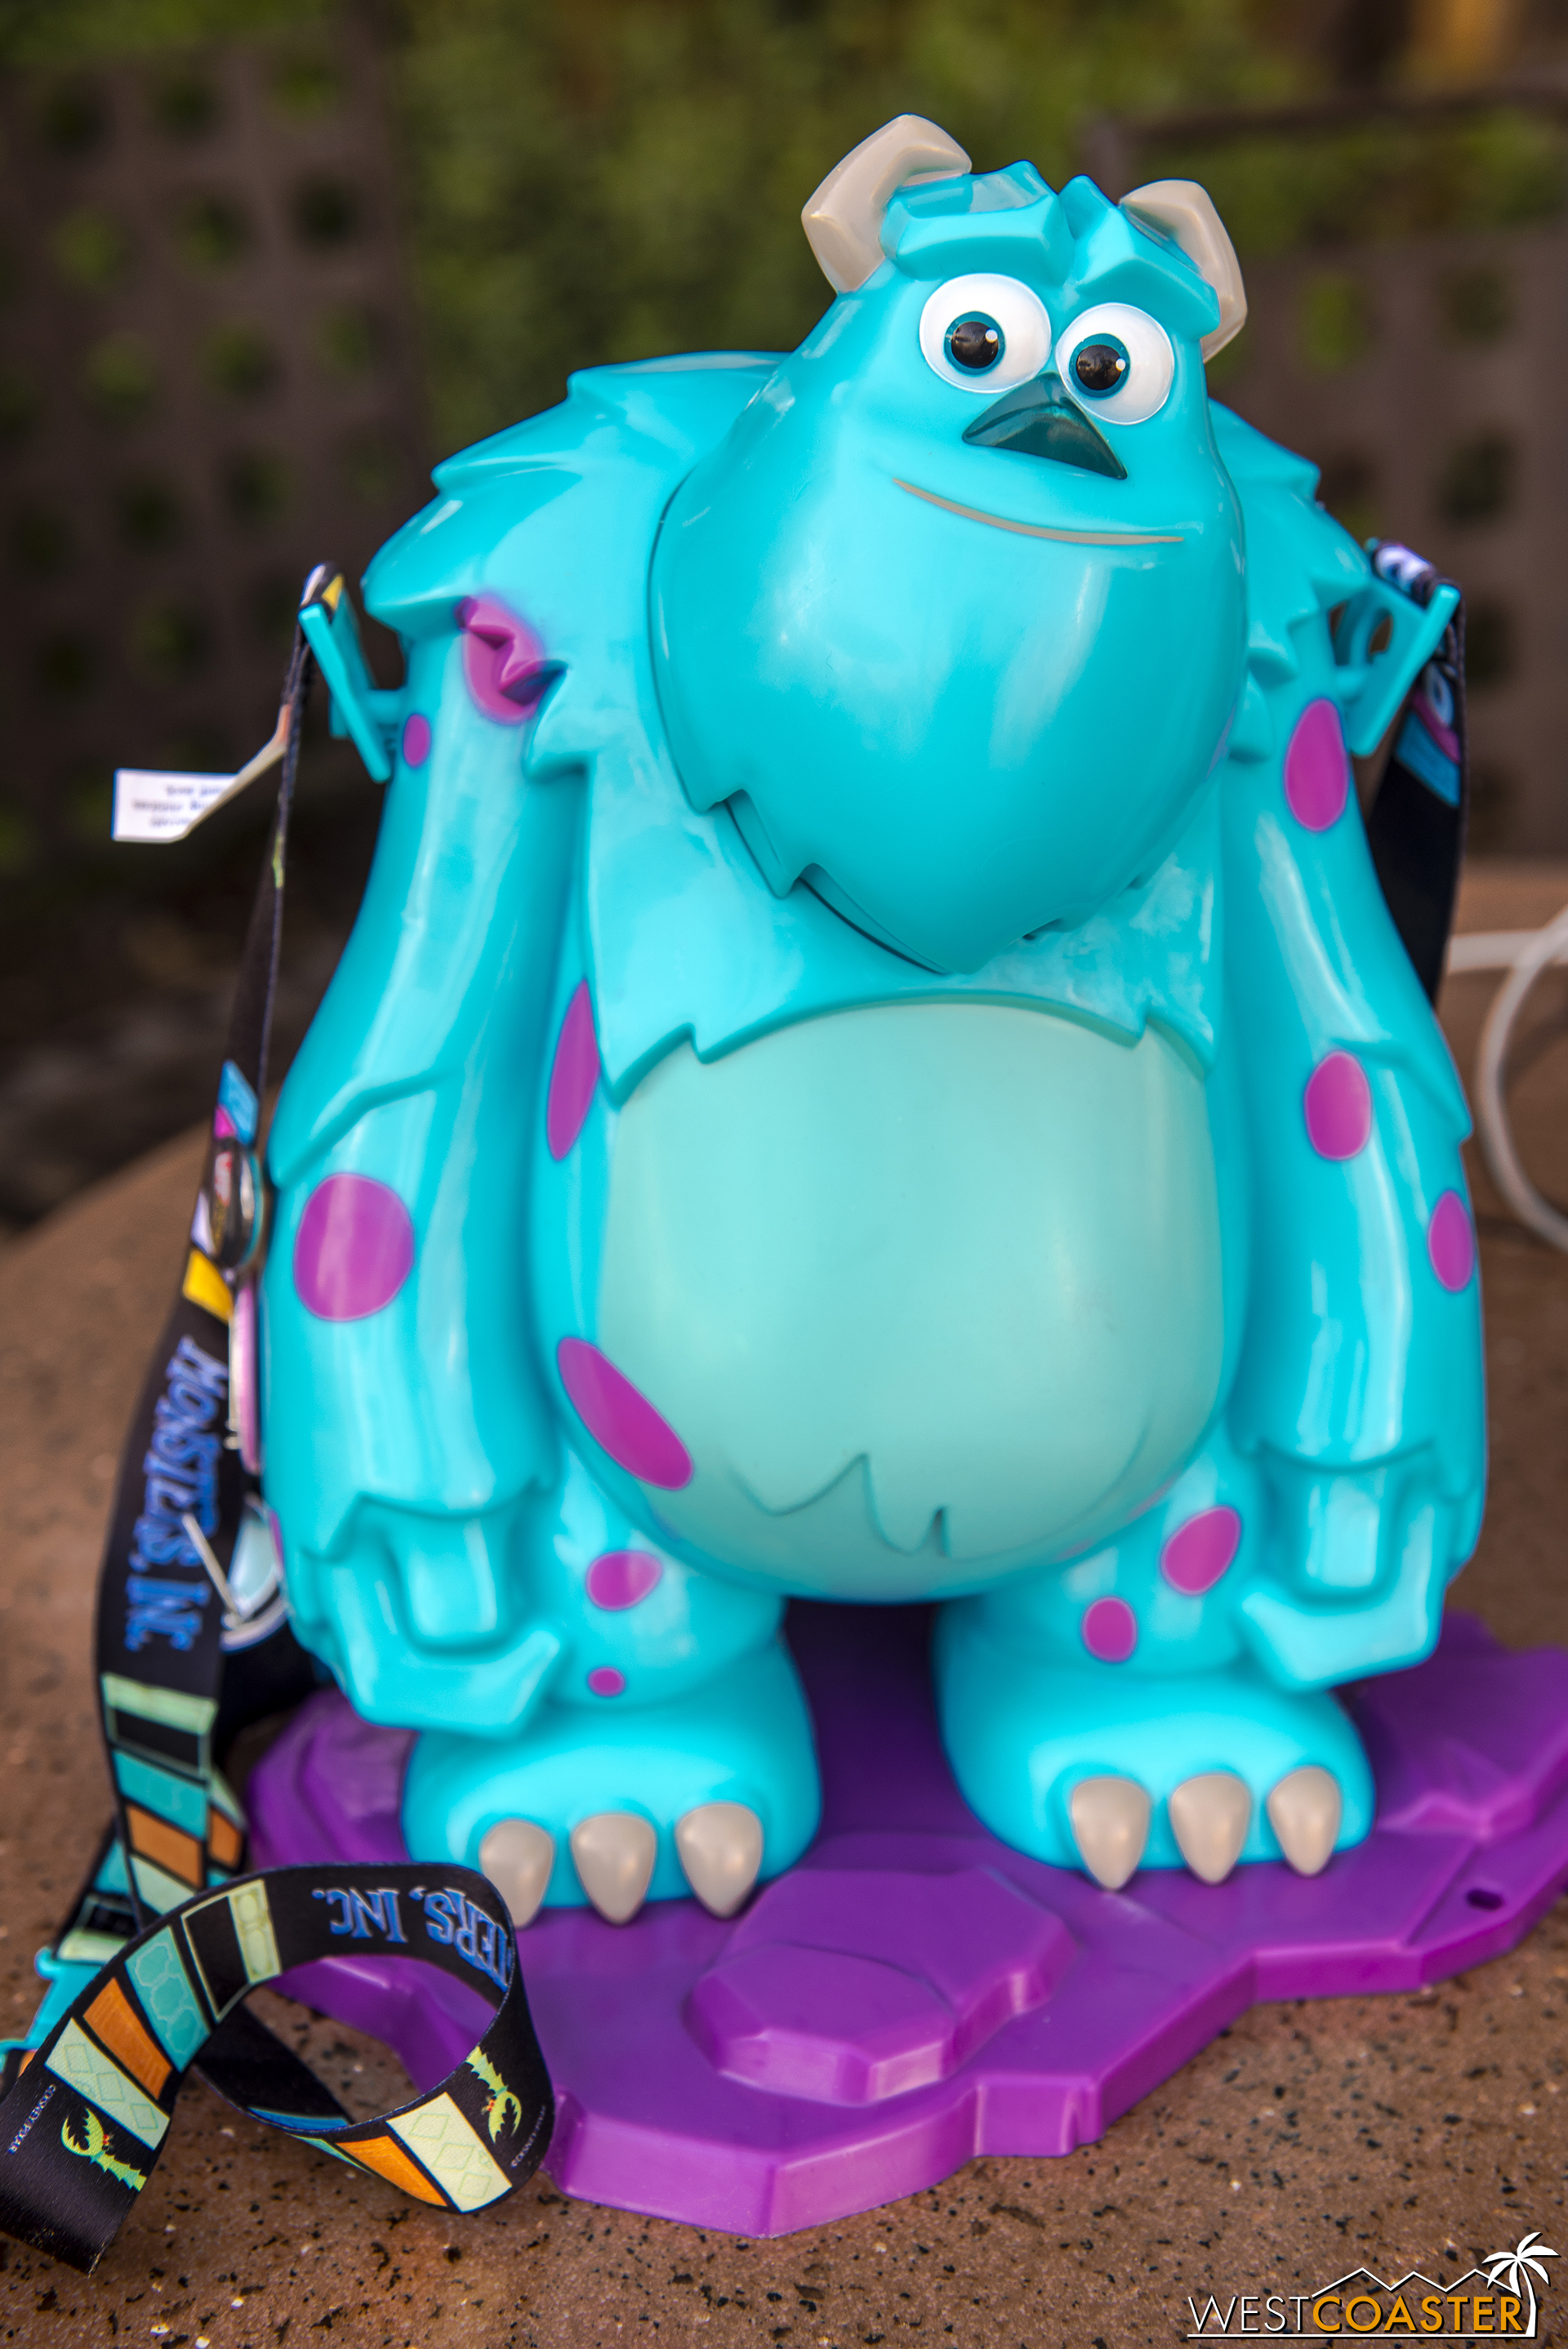 Outside the stores, there are souvenir items at various food stands too, like this pretty fantastic Sulley popcorn bucket.